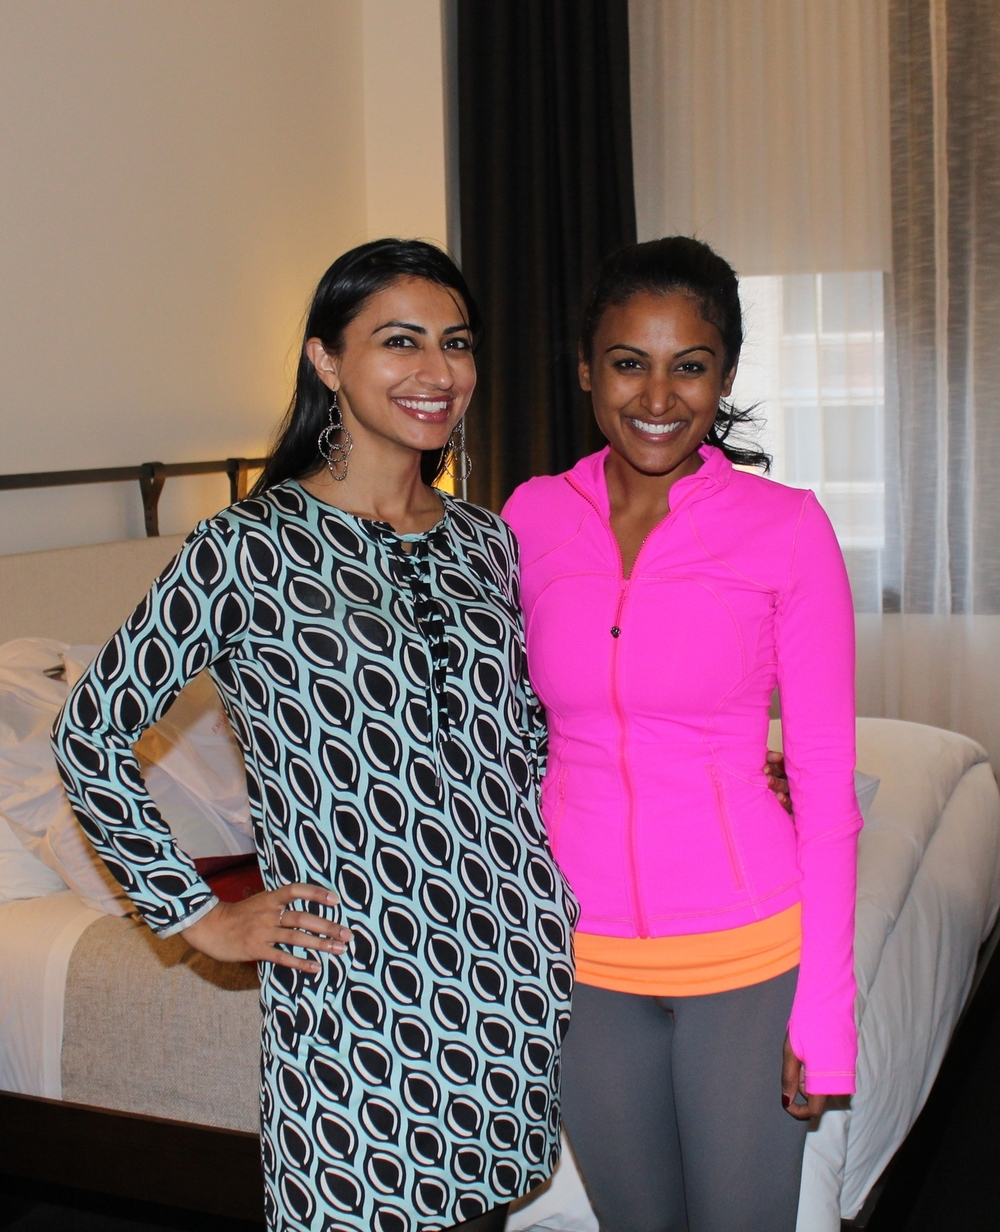 Shaffali M. with then reigning Miss America, Nina Davuluri visiting NYC- she is also passionate about living a wellness lifestyle!